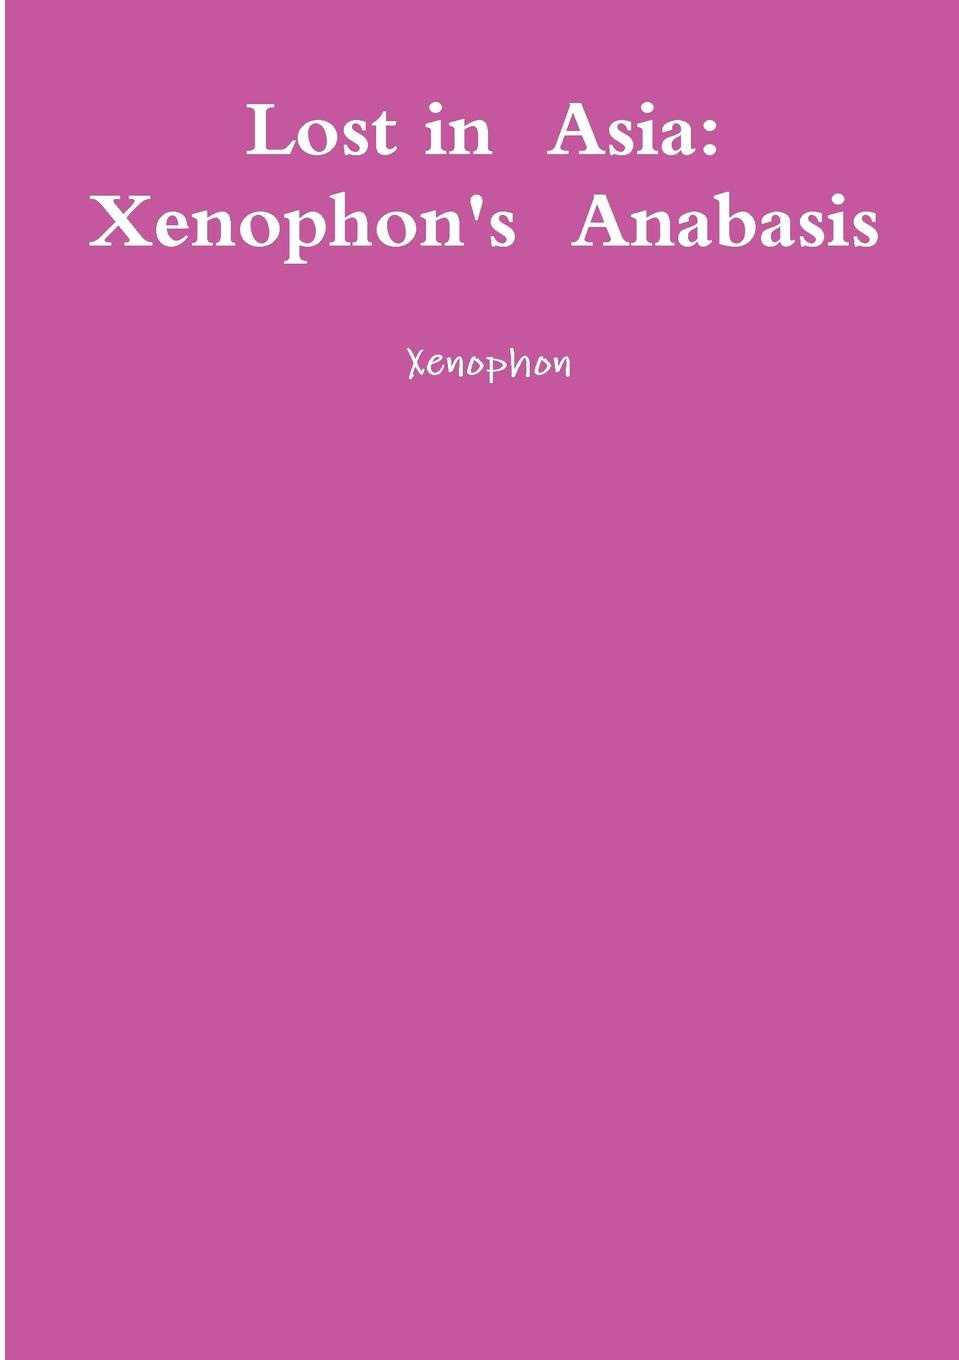 Xenophon Lost in Asia. Xenophon.s Anabasis xenophon xenophntos kyrou anabasis romanized form ancient greek edition